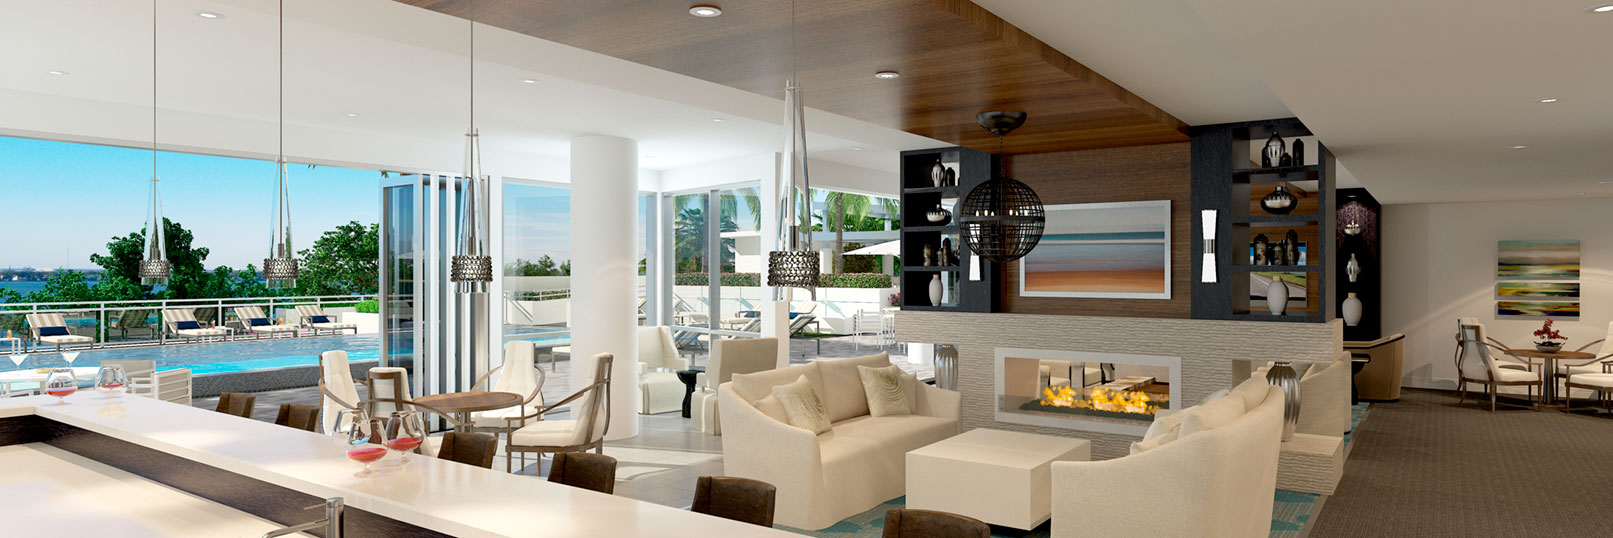 The Virage Bayshore condo interior photo